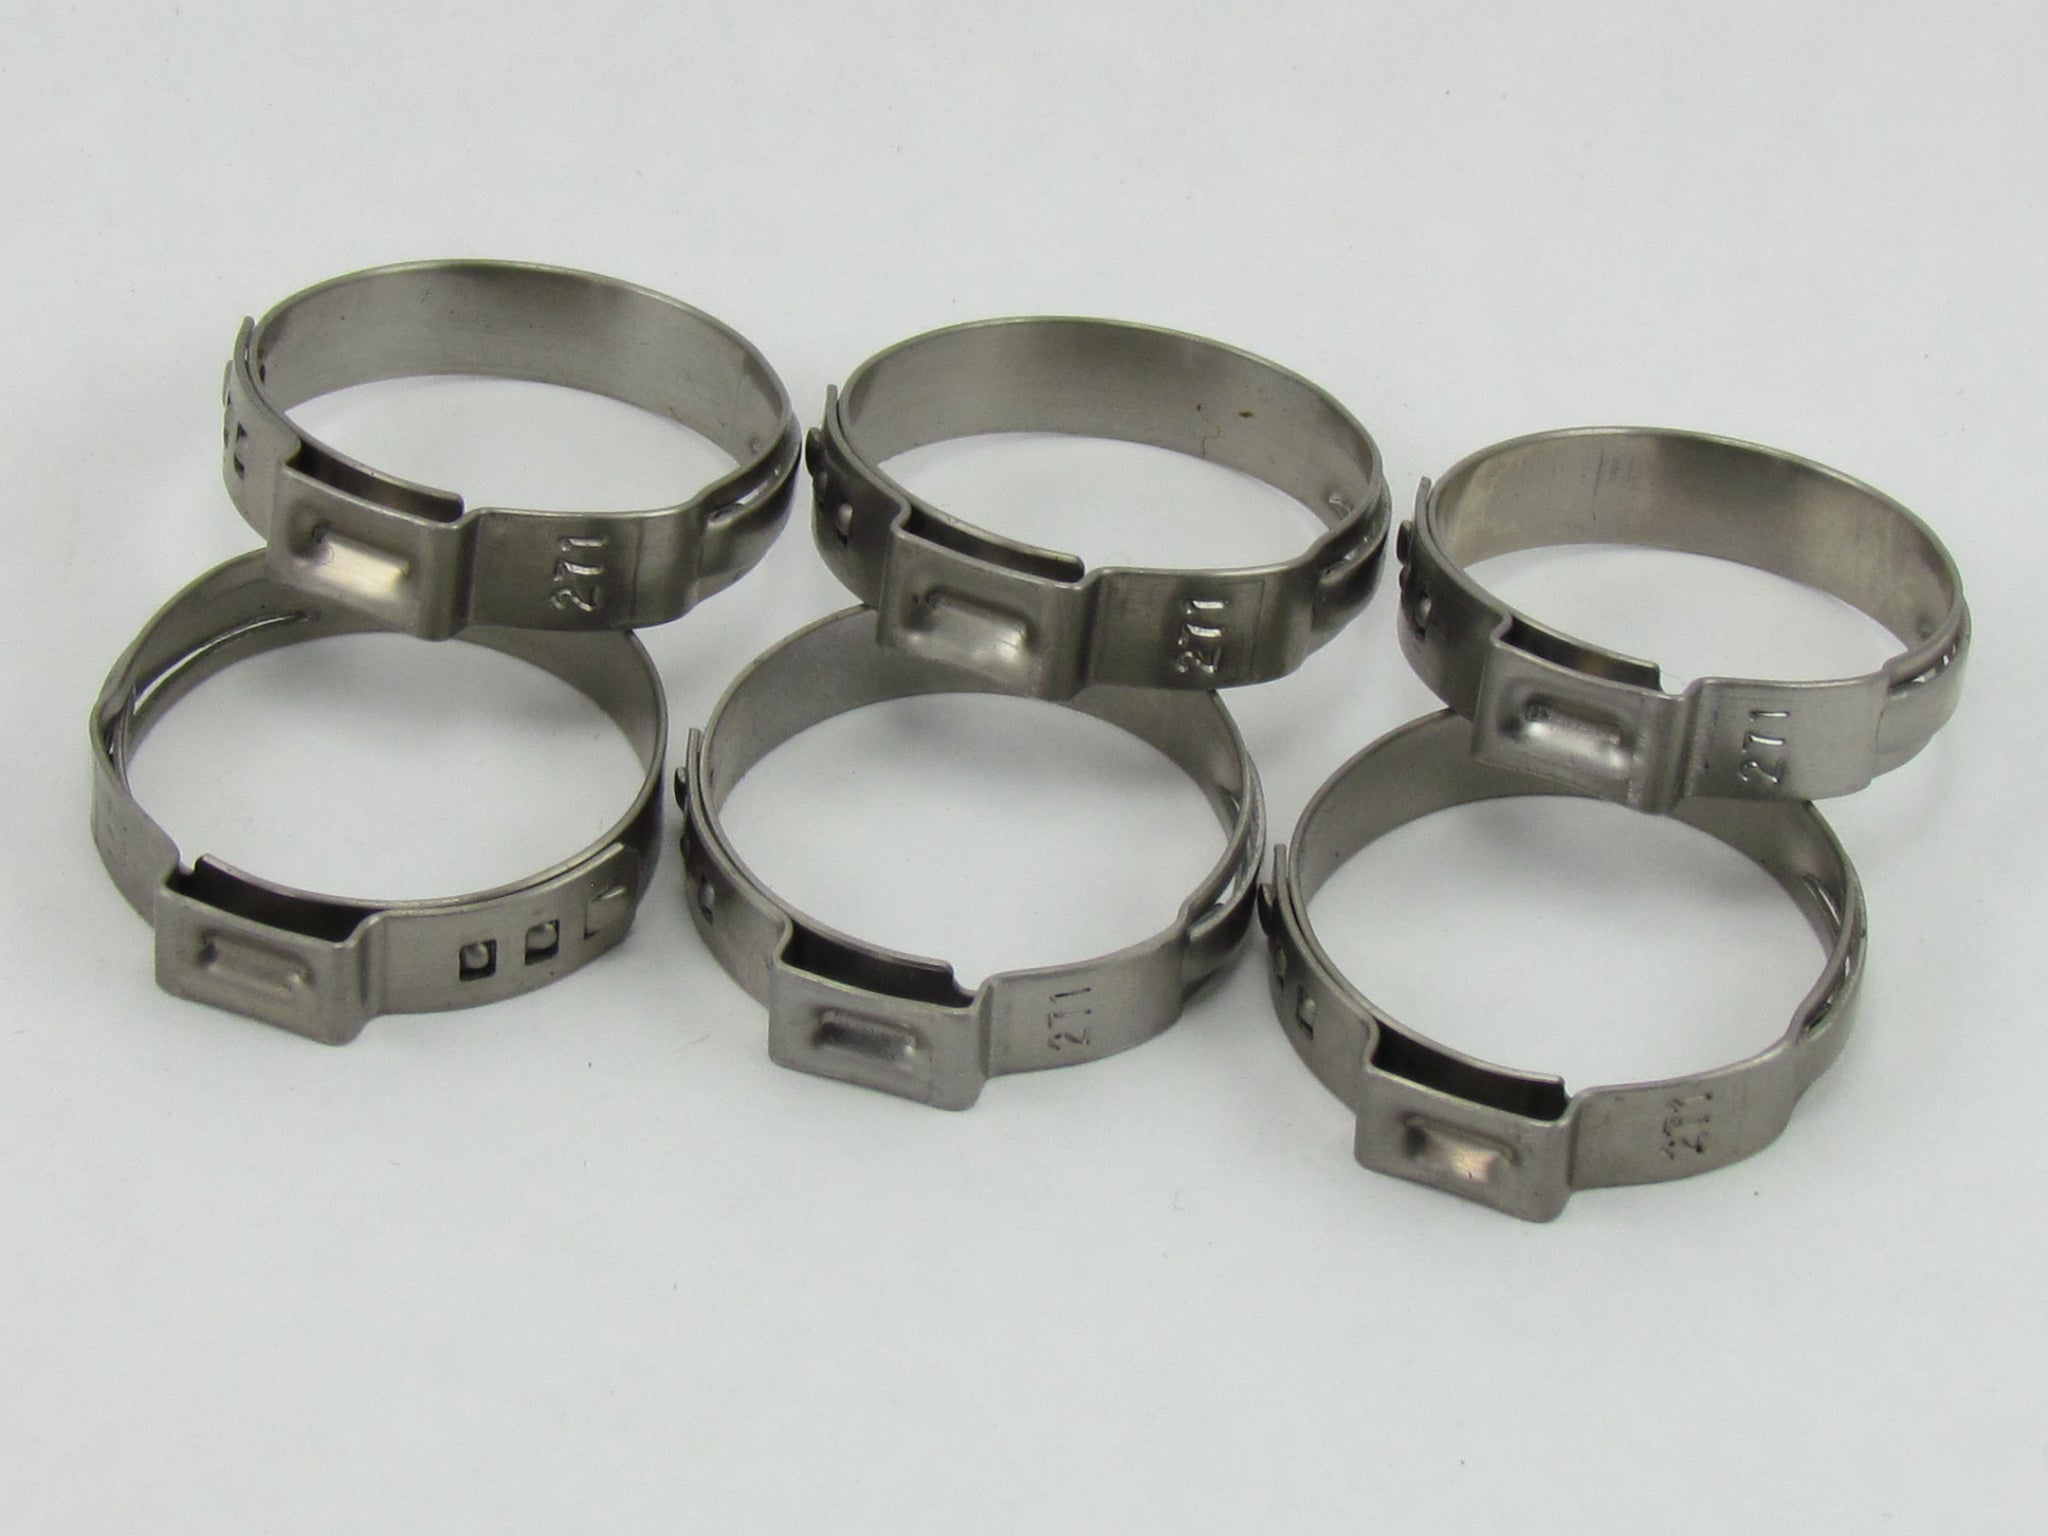 791 SERIES PUSH-LOCK STAINLESS STEEL PRO CLAMPS